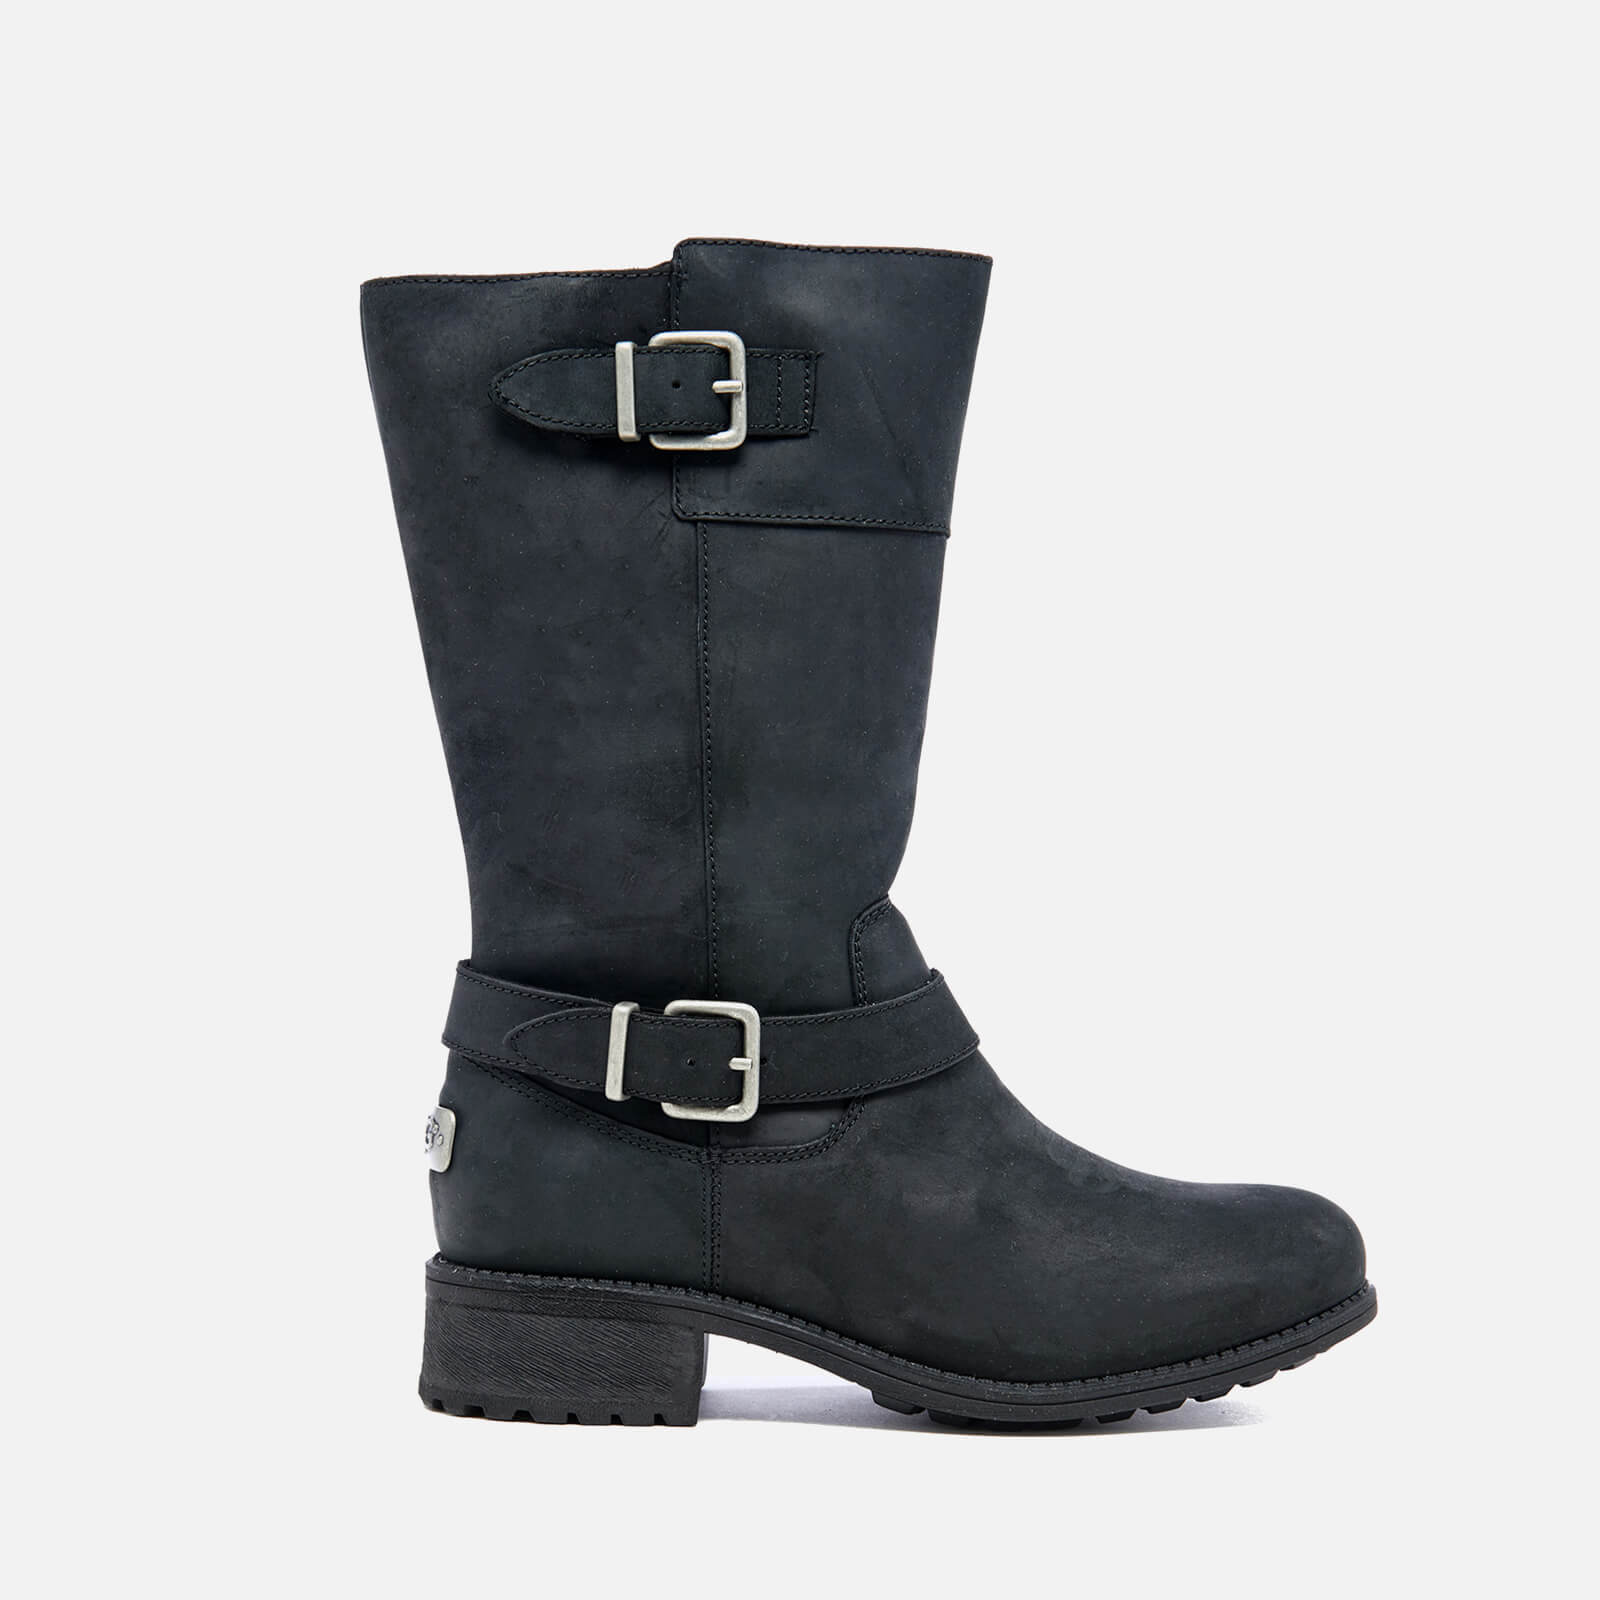 ce484603 UGG Women's Tisdale Buckle Biker Boots - Black | FREE UK Delivery | Allsole